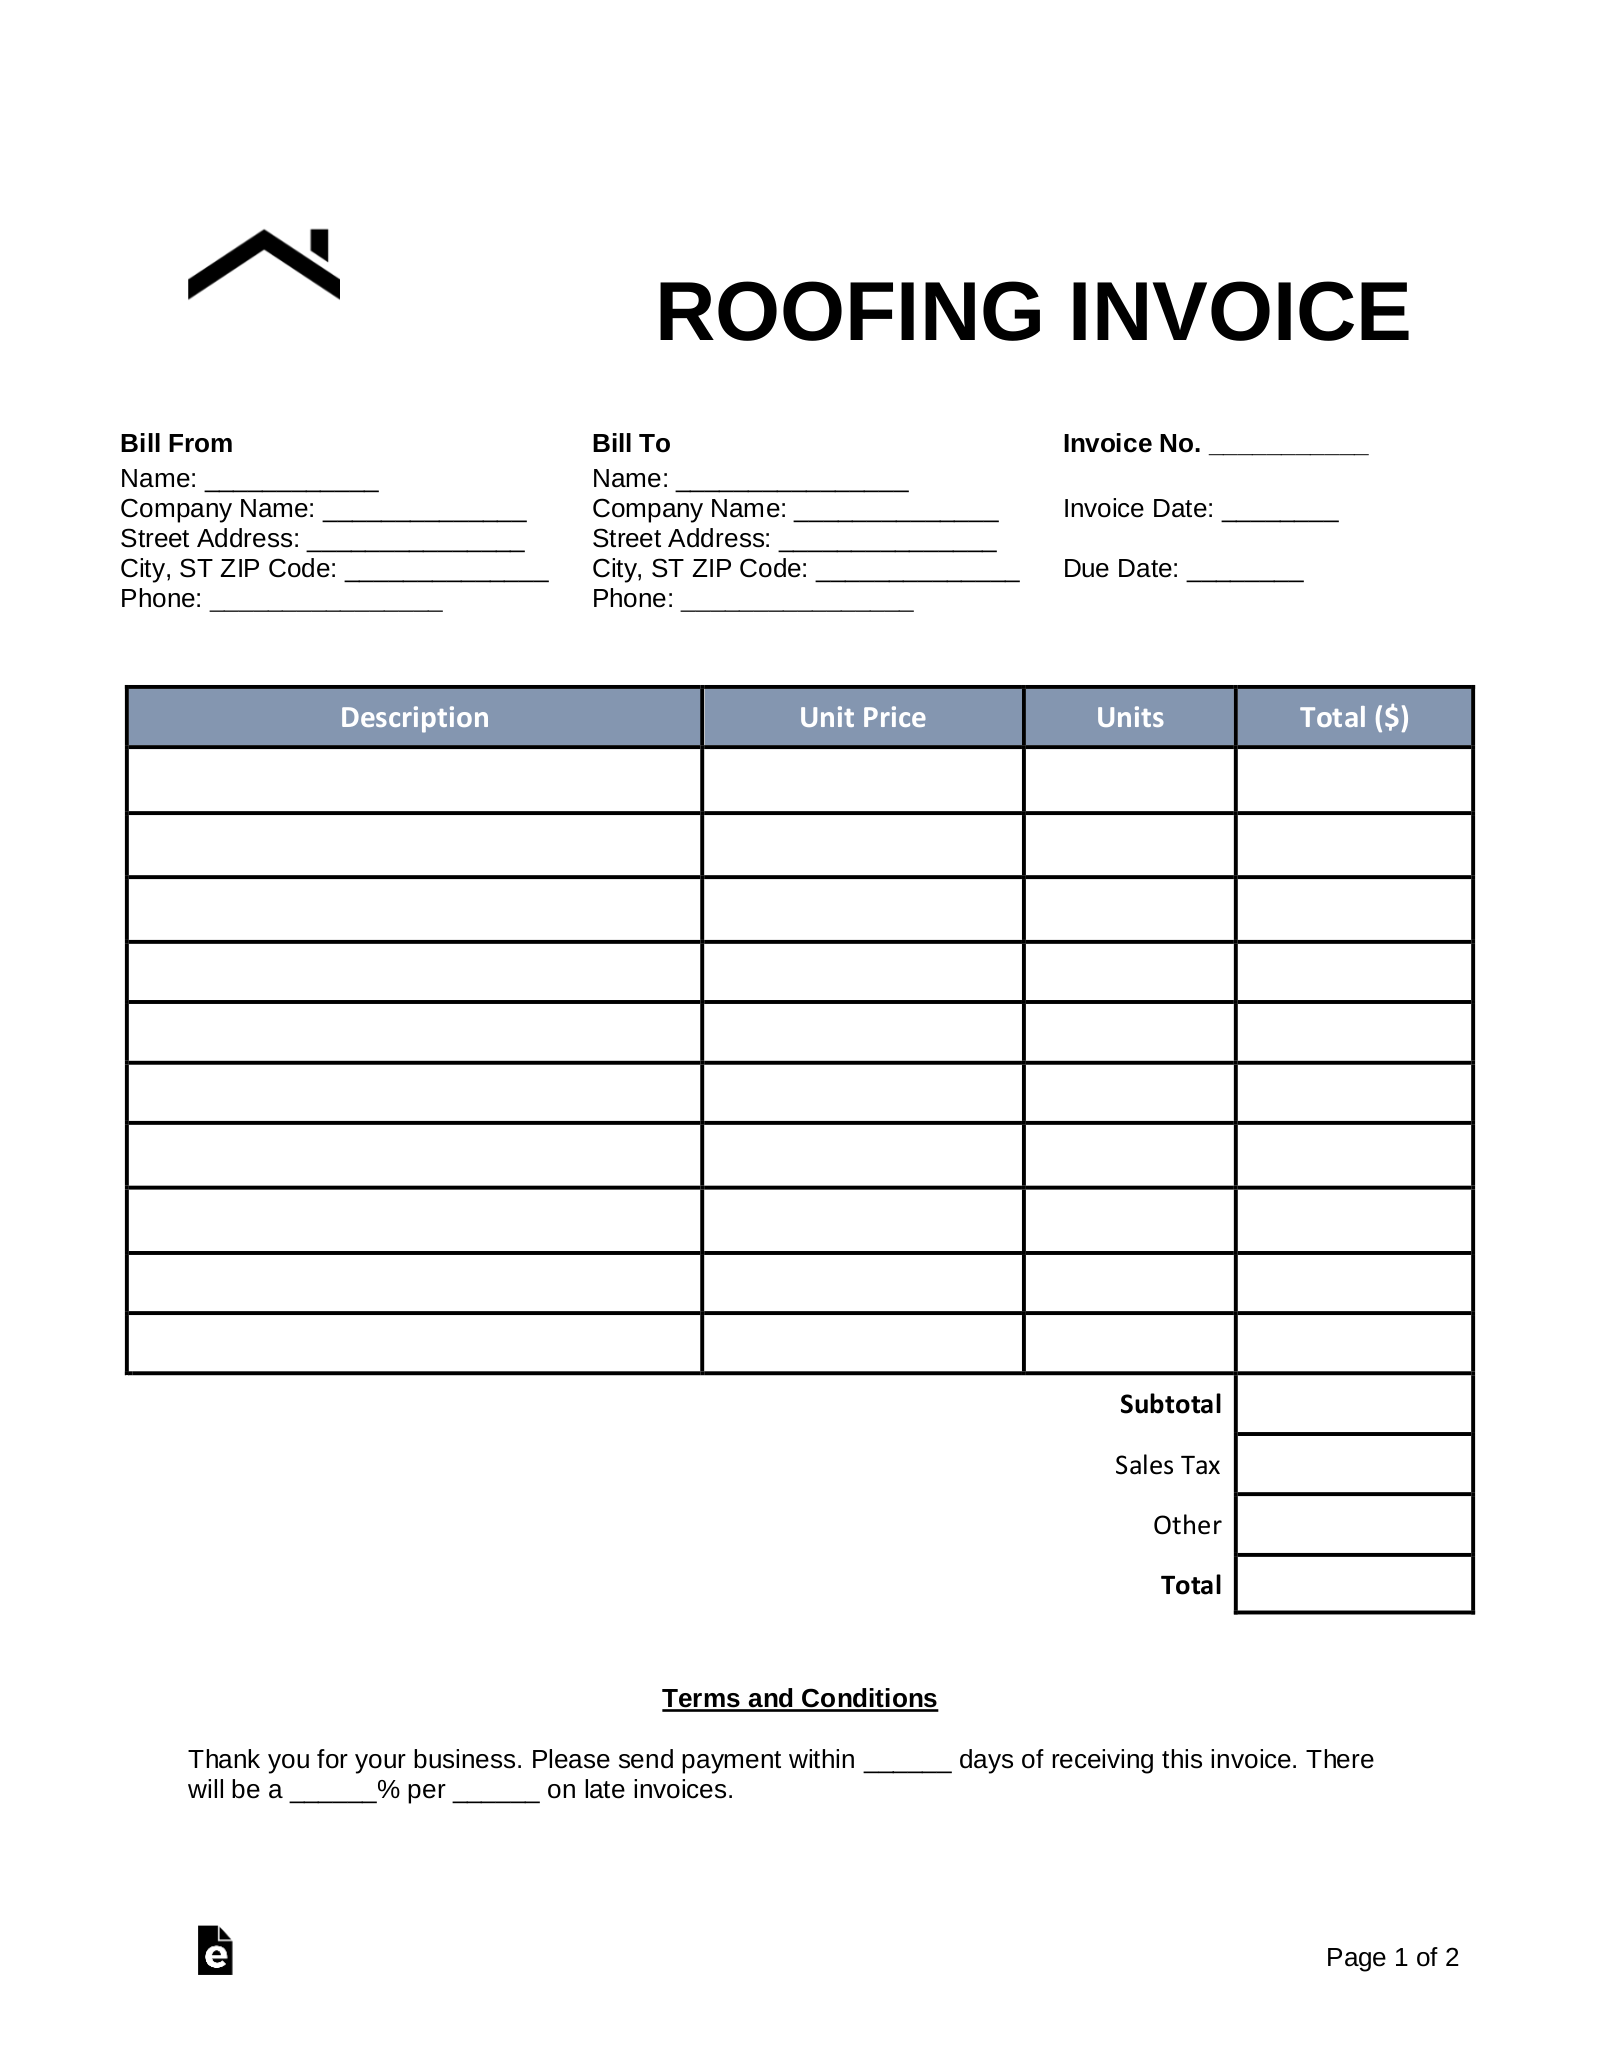 Free Roofing Invoice Template Word Pdf Eforms Free Fillable Forms